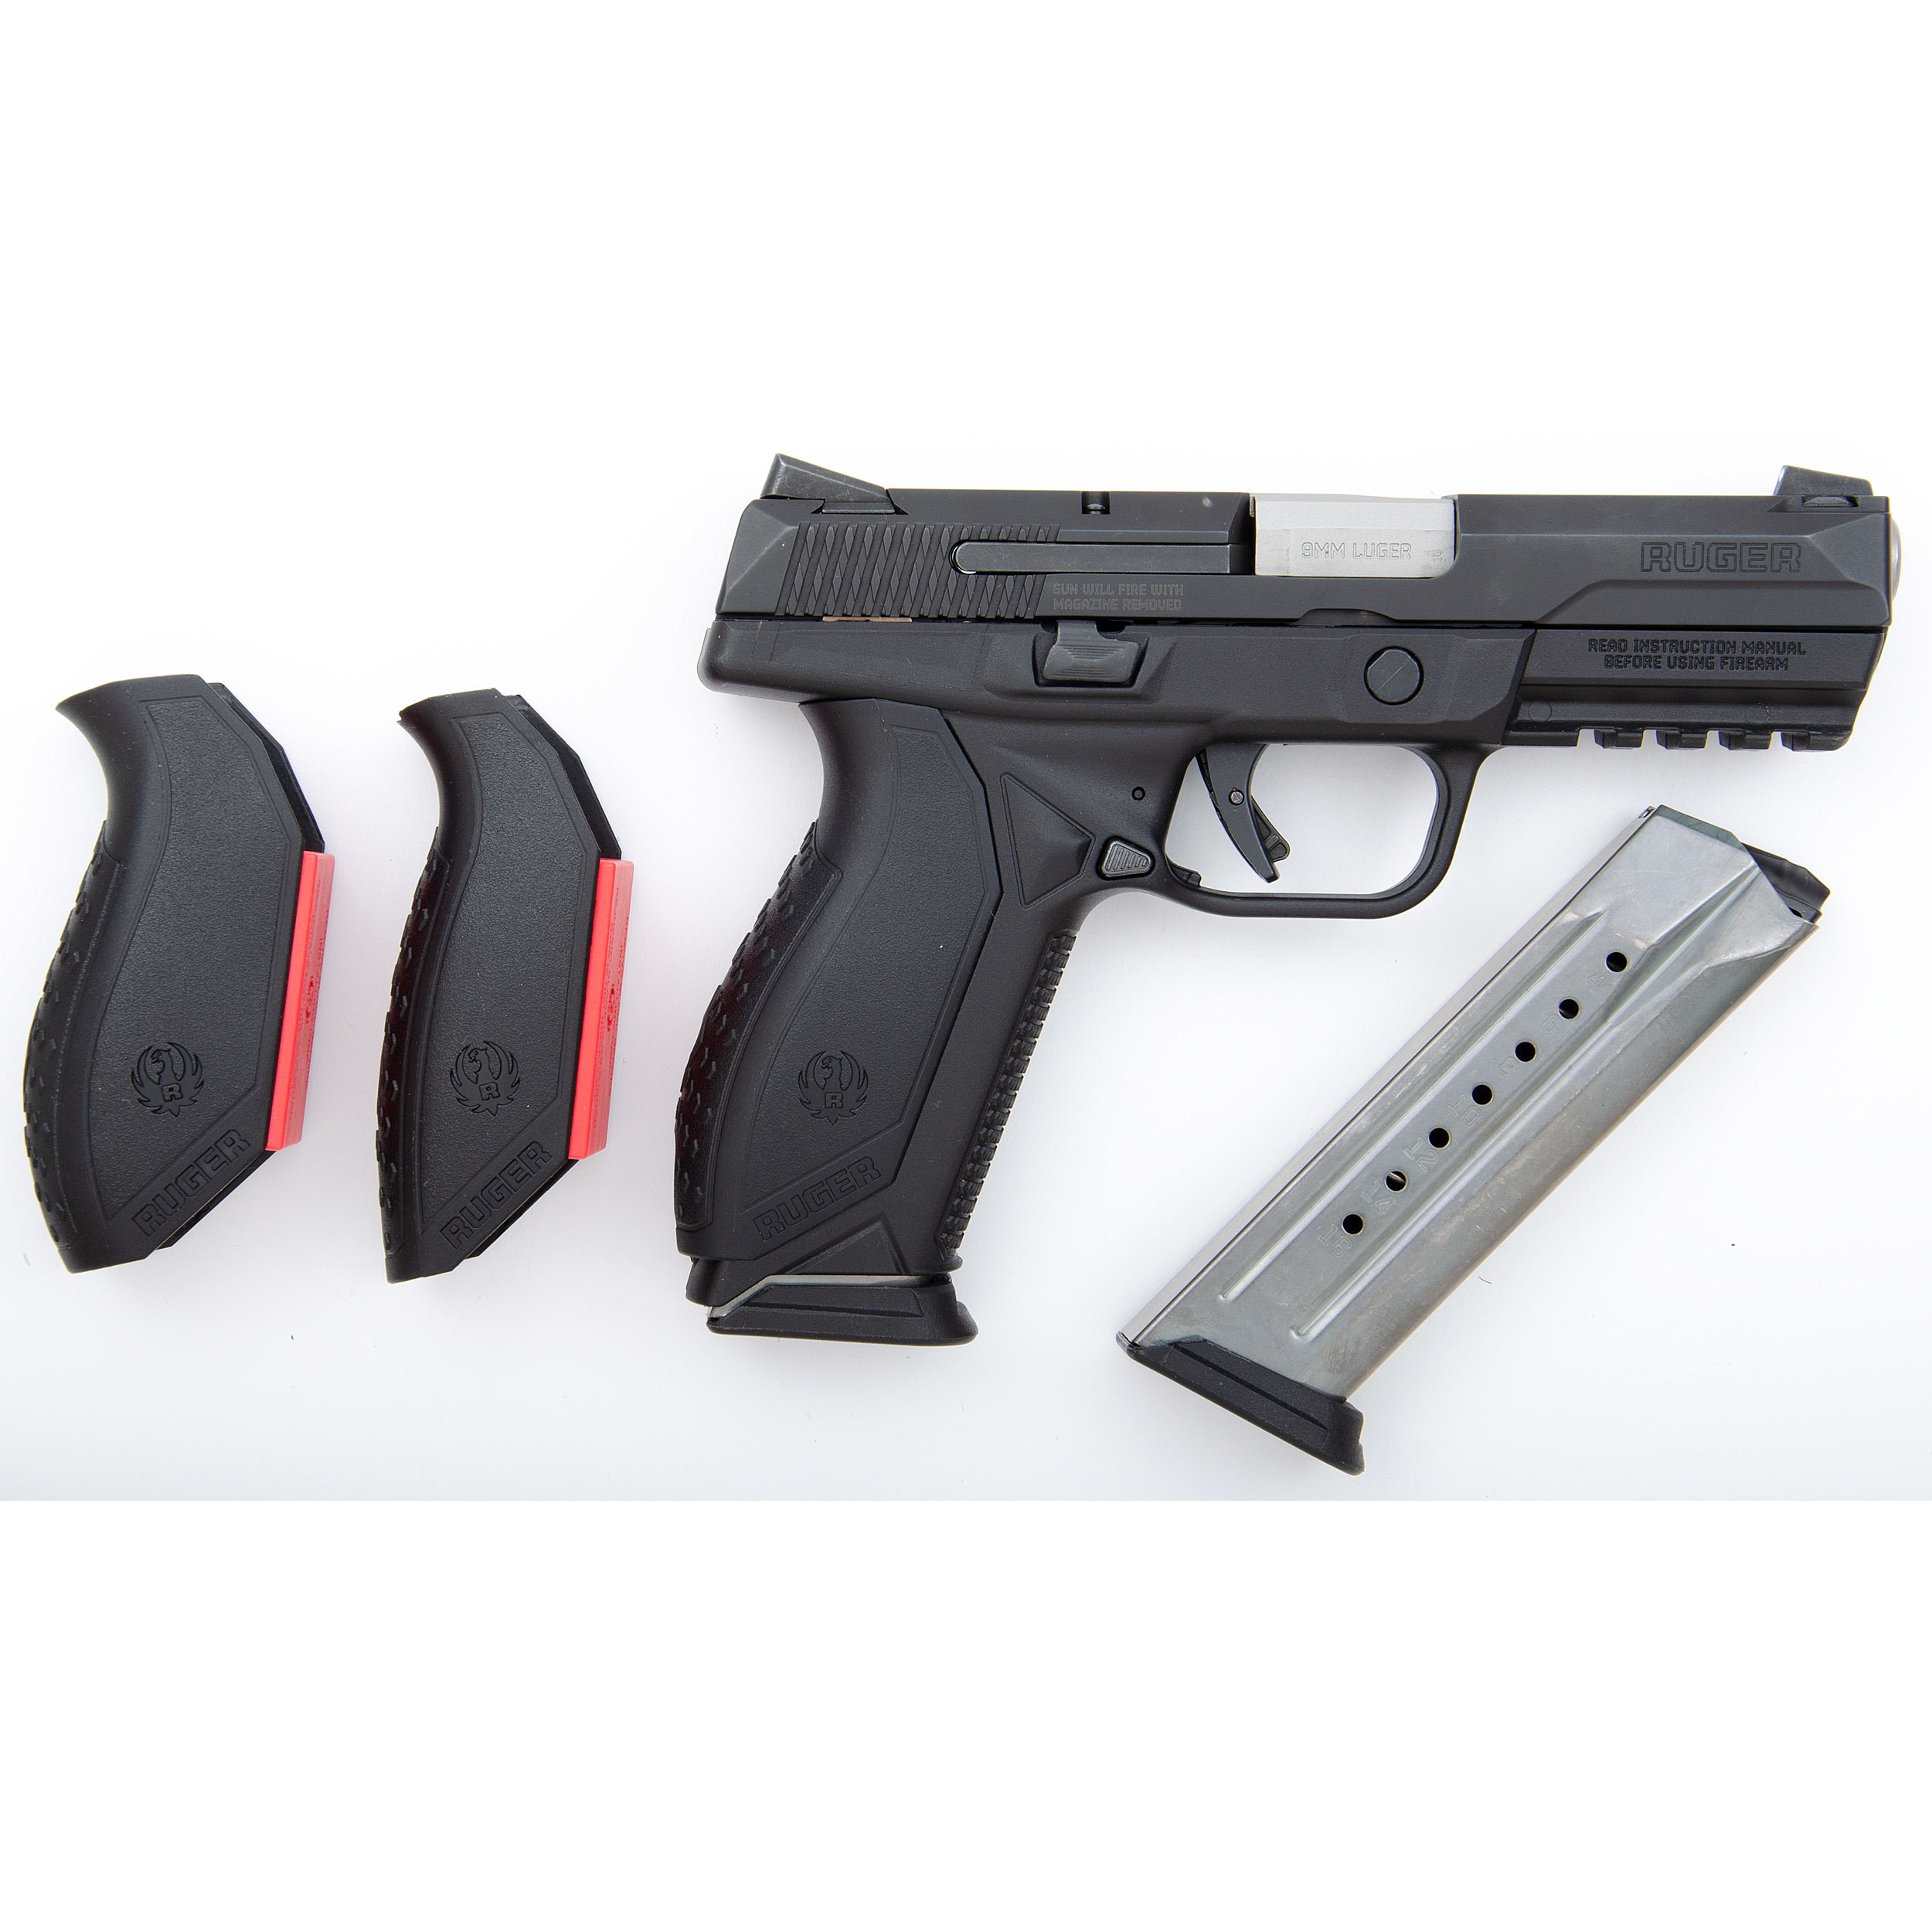 Ruger American Pistol in Original Box   Cowan's Auction House: The